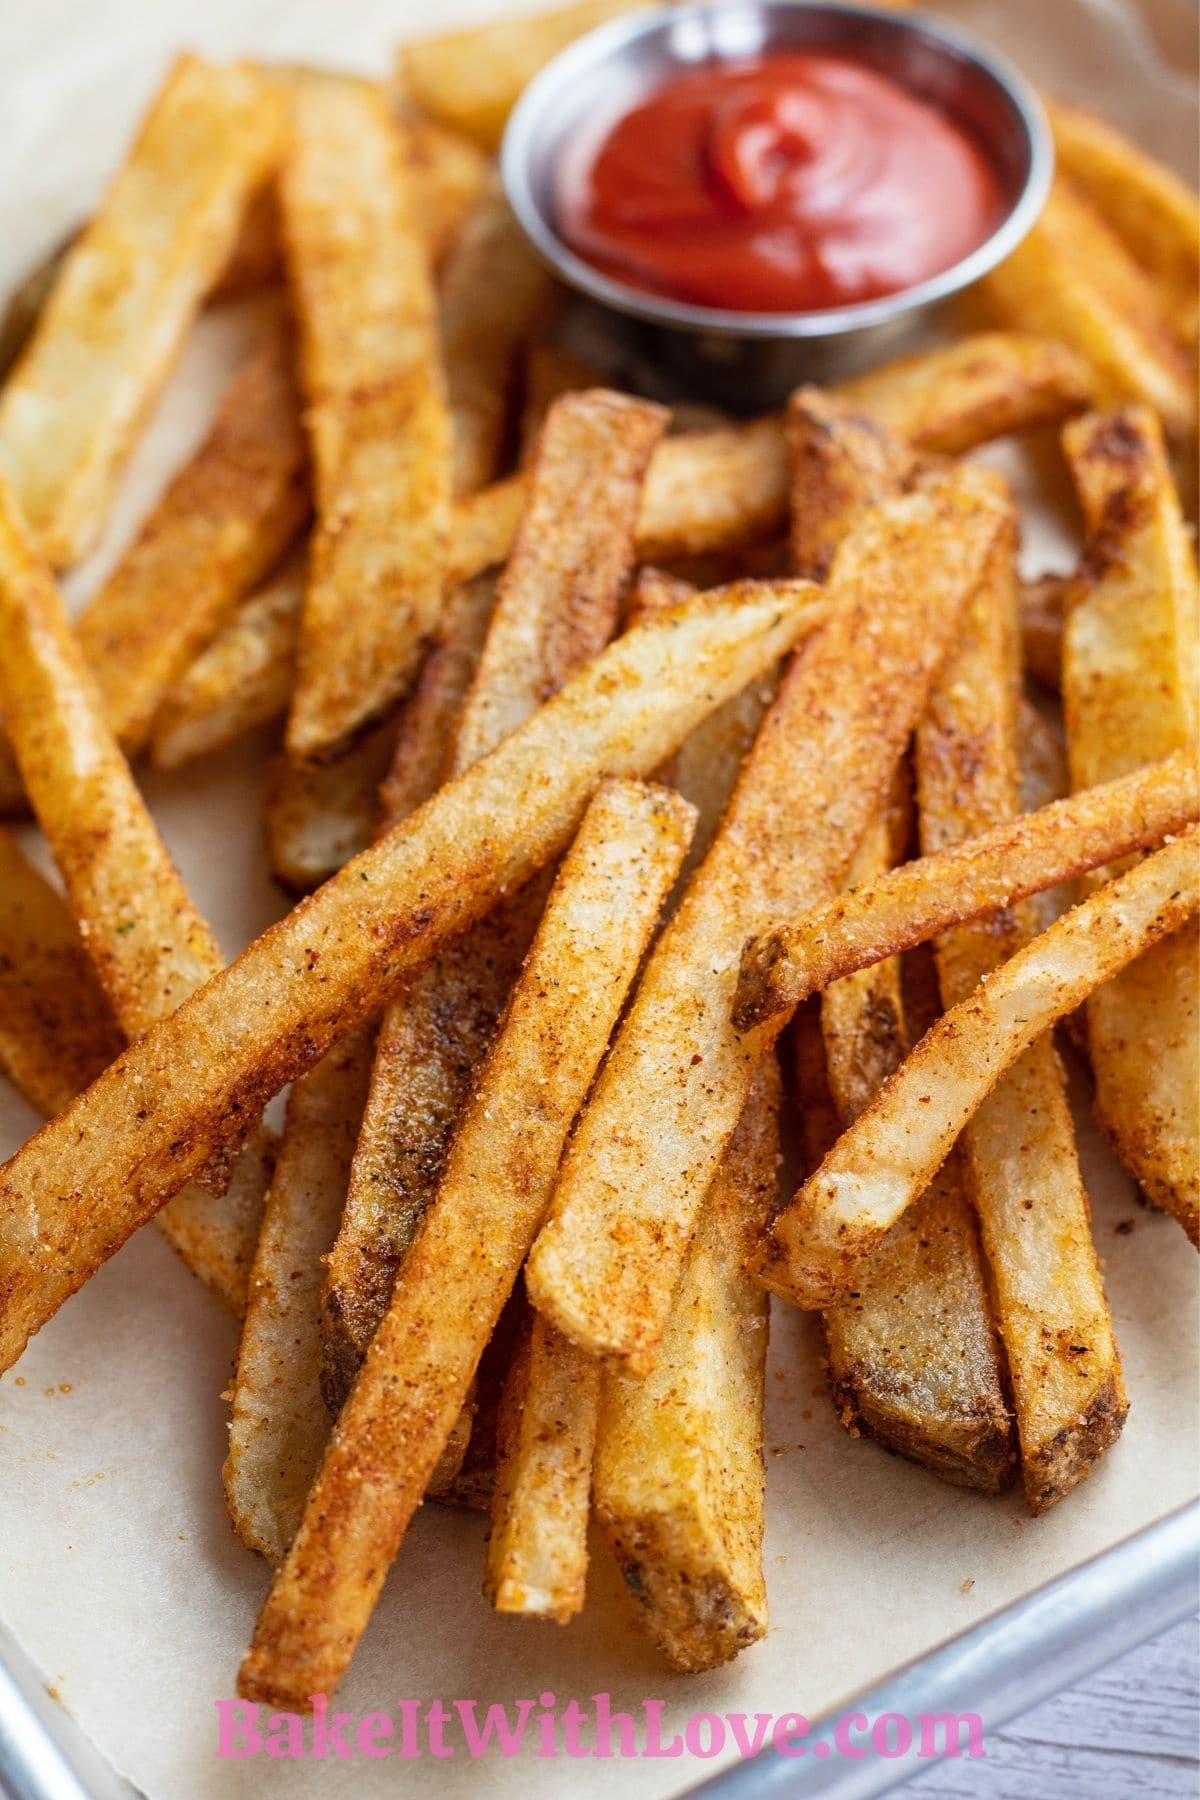 Seasoned Cajun fries double fried to perfection and served with ketchup.